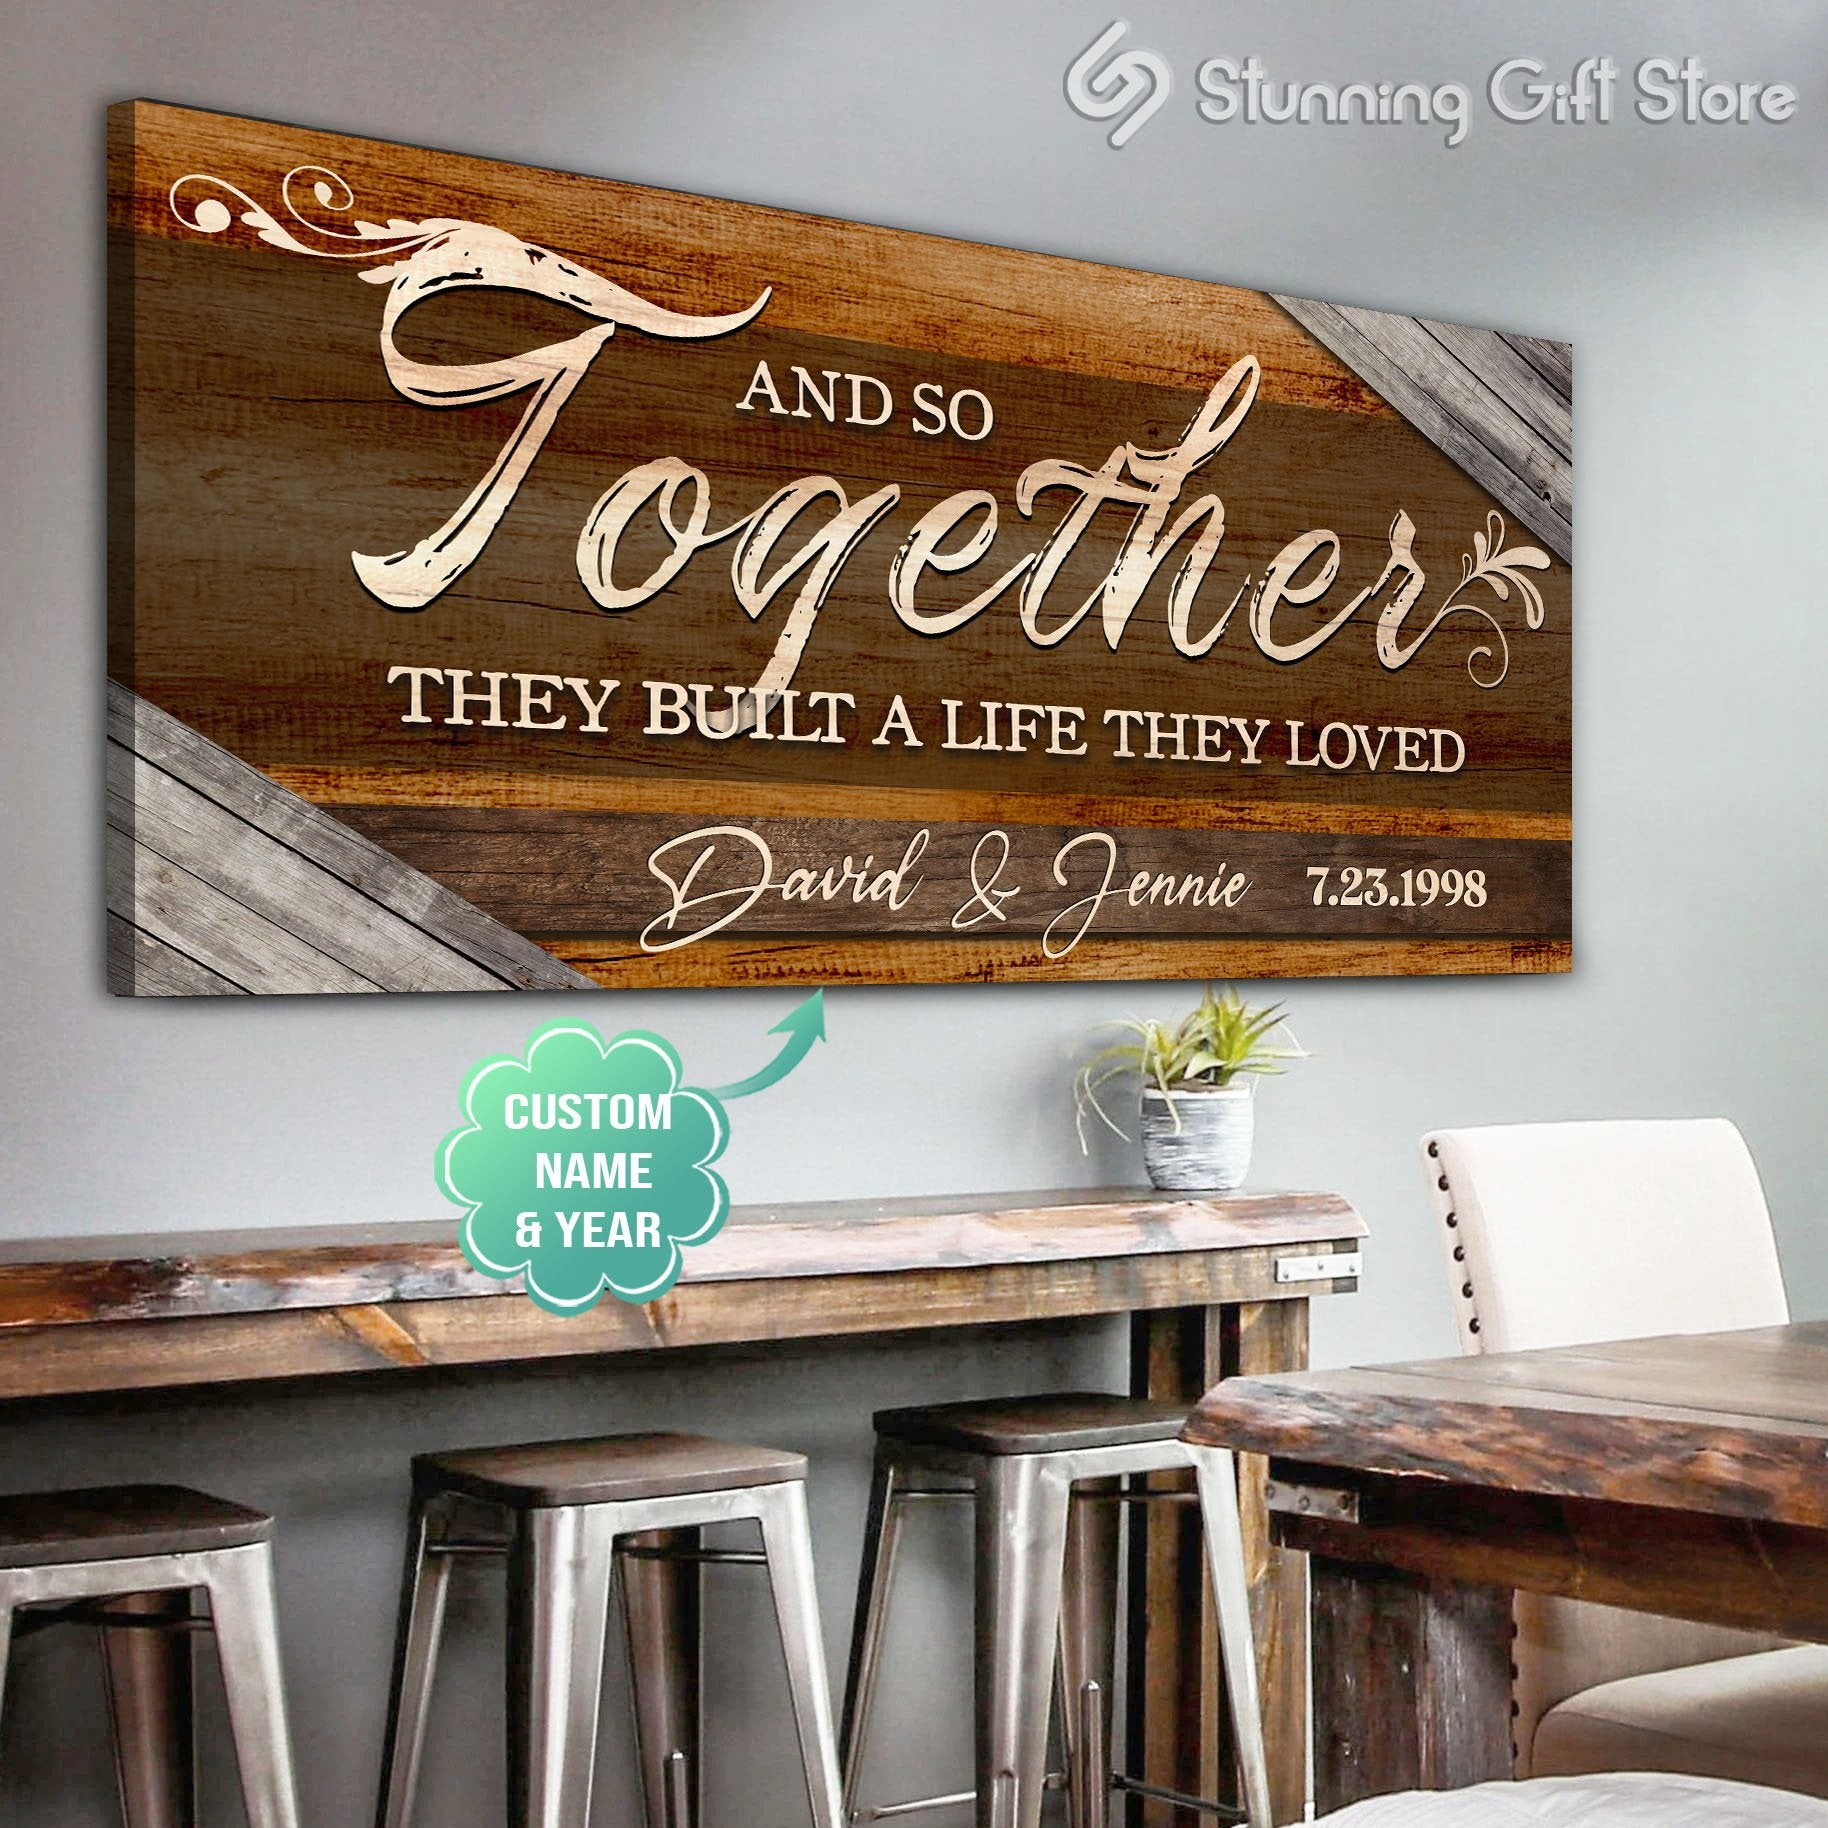 Gift idea for married couple   anniversary present ideas   Best gifts for married couple